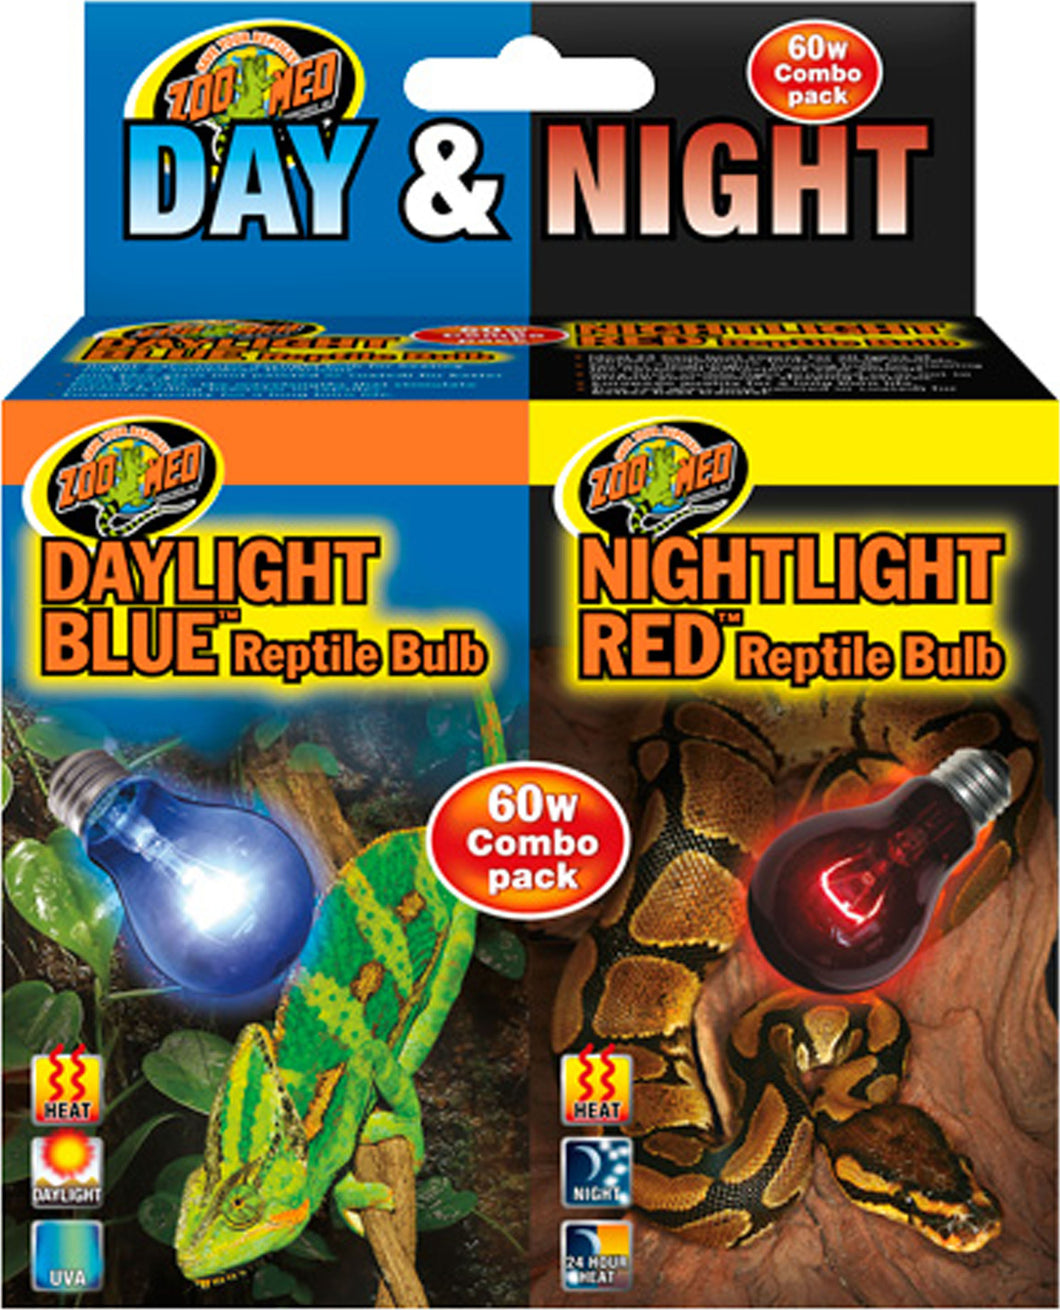 Day And Night Reptile Bulb Combo Pack